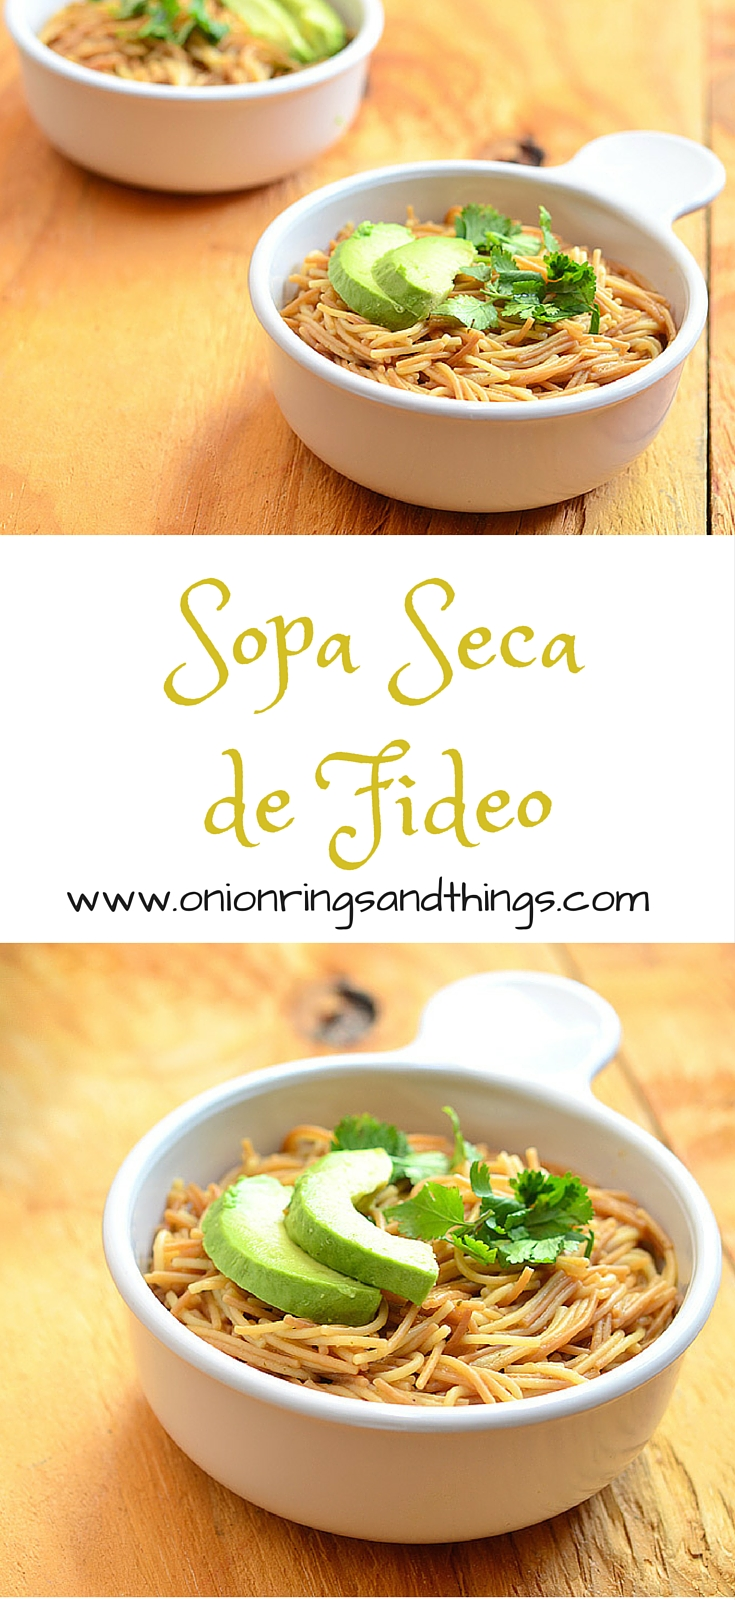 sopa seca de fideo is a classic Mexican dish made with thin noodles simmered in a tomato-based broth until dry